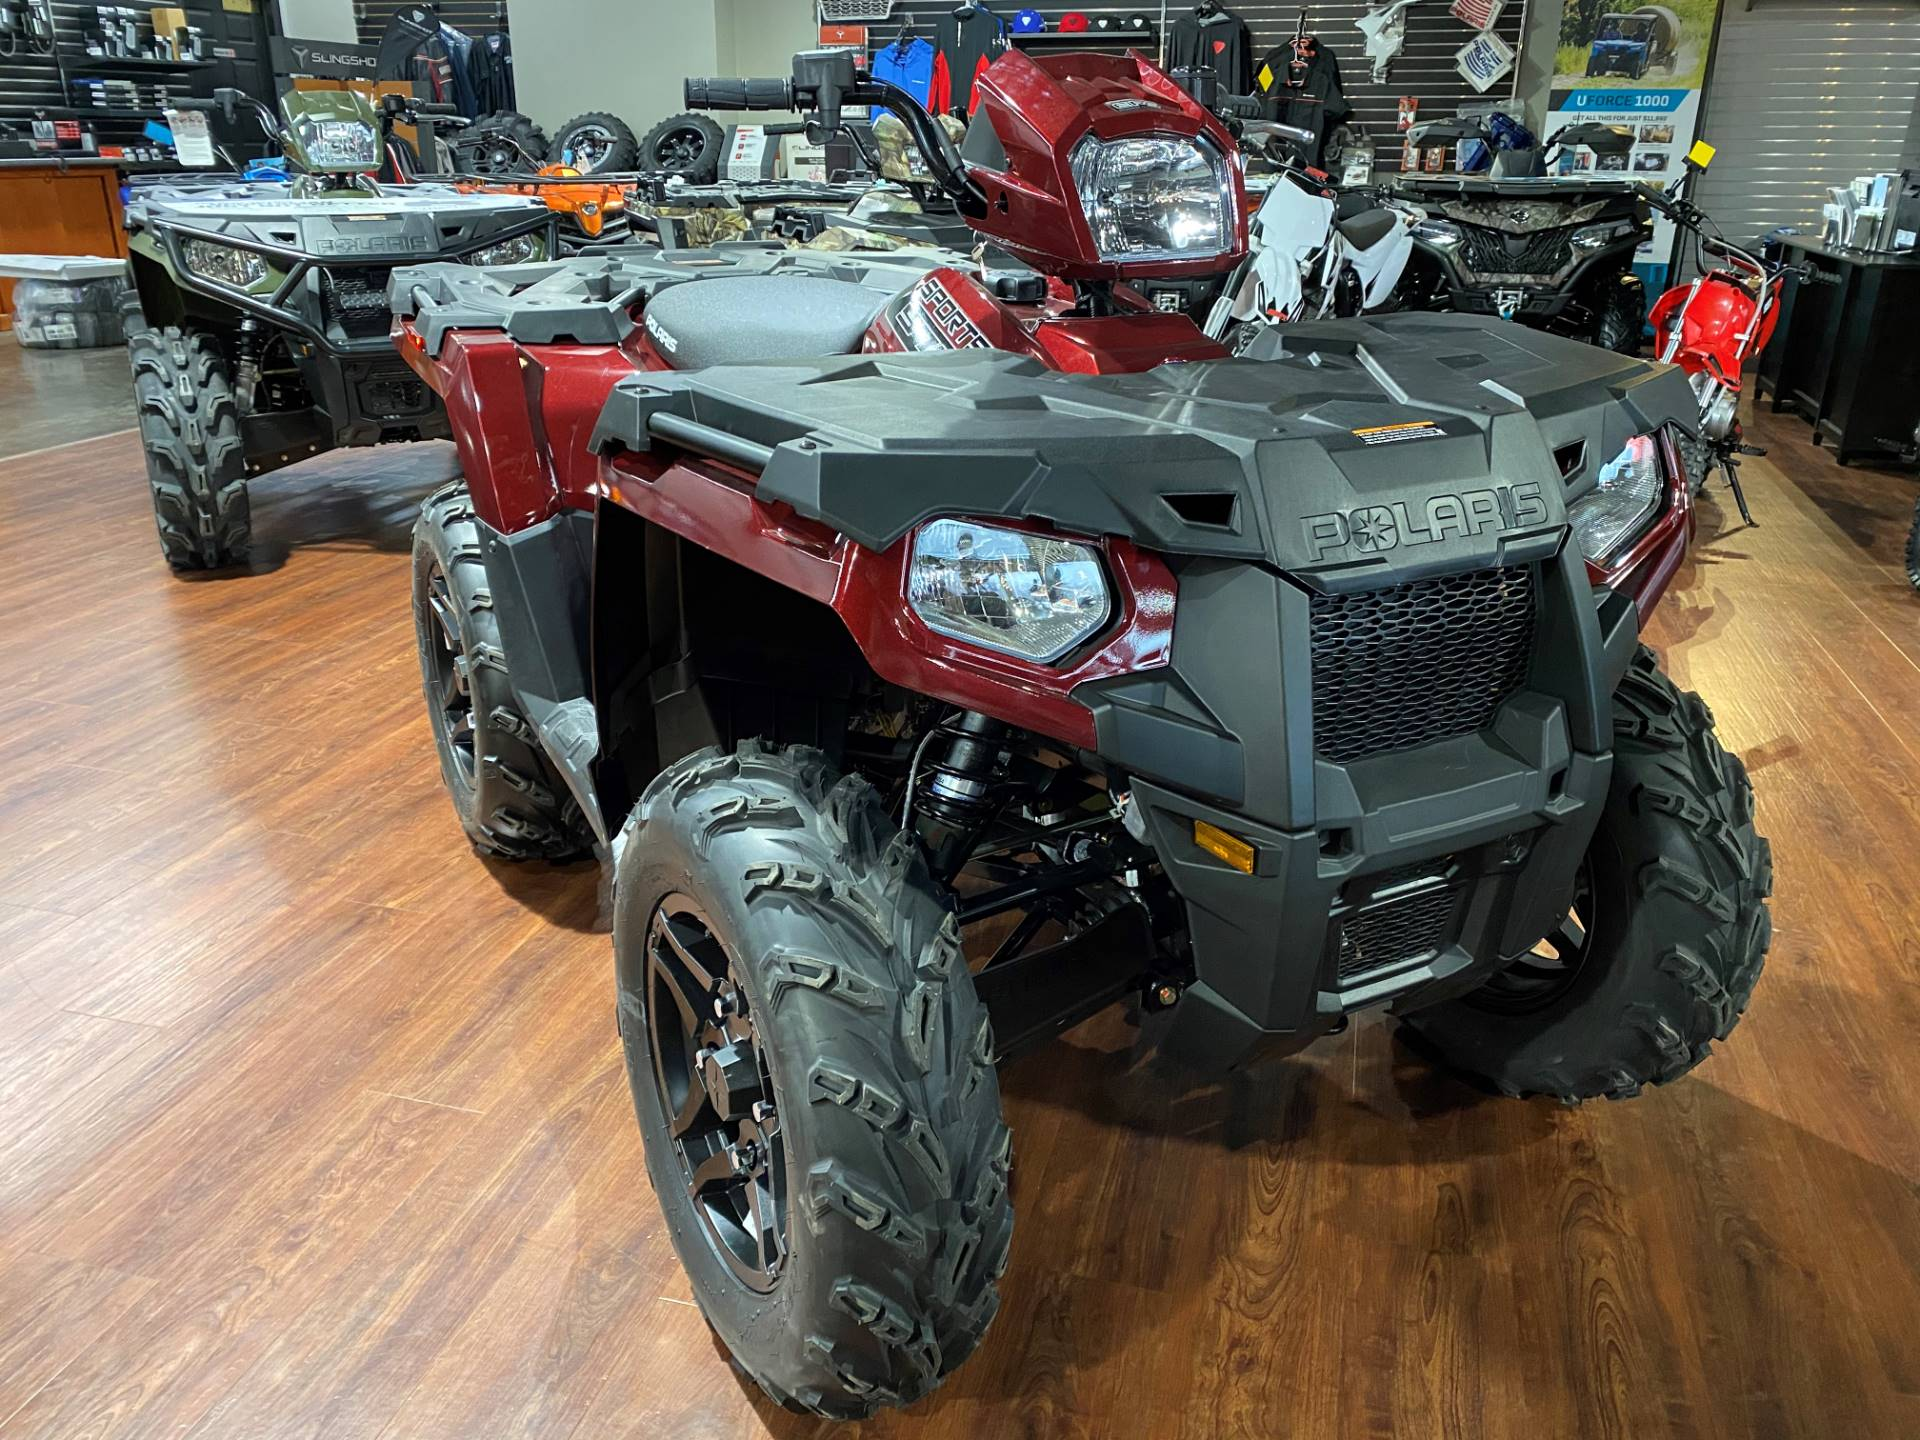 2019 Polaris Sportsman 570 SP - Photo 18